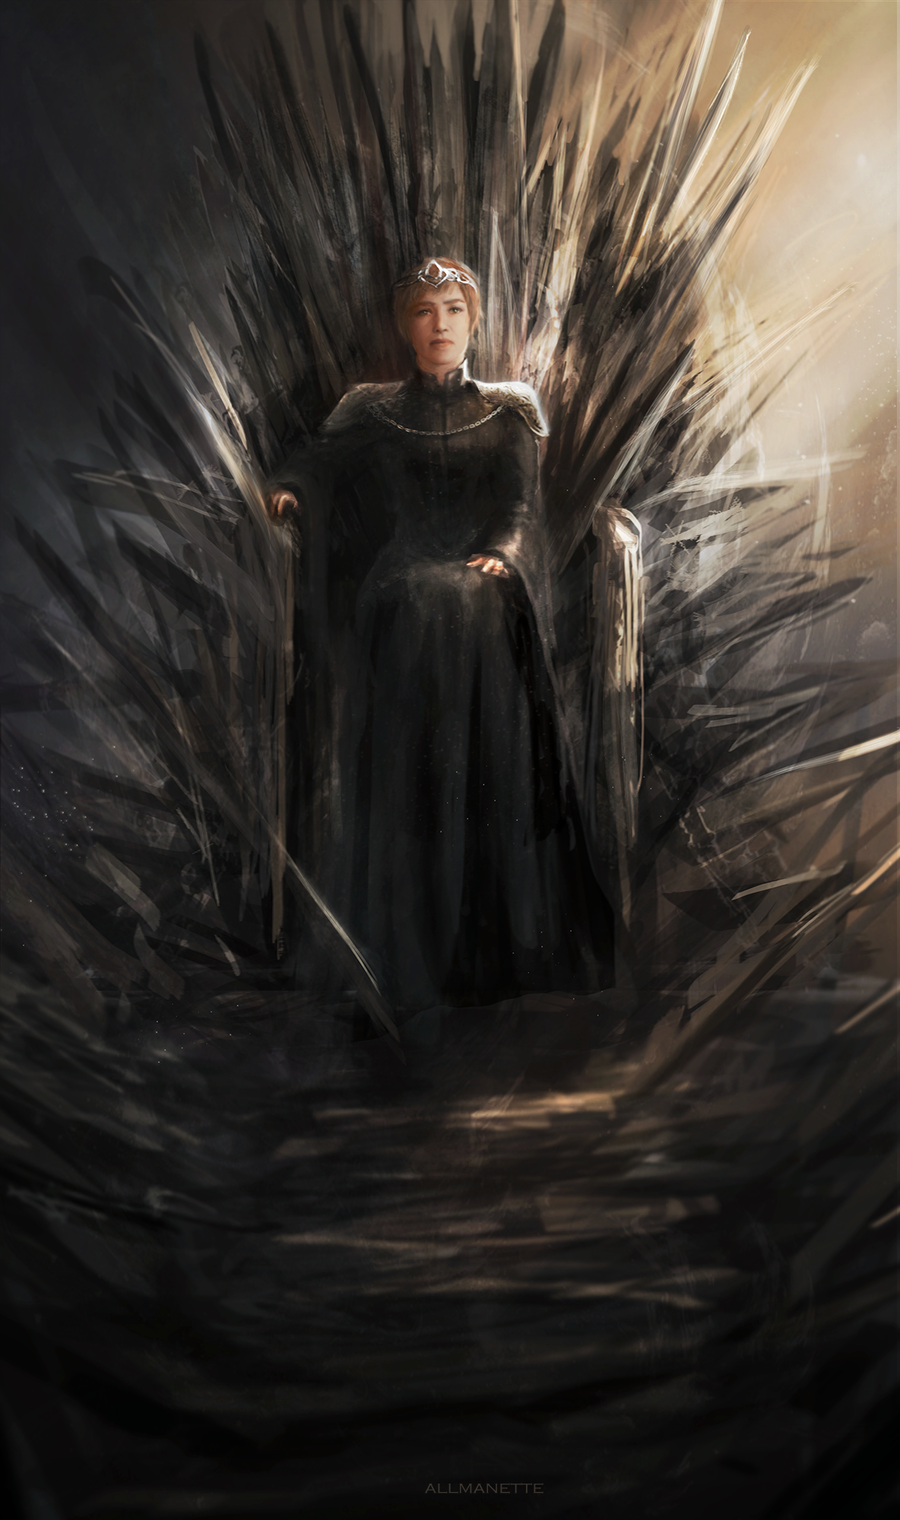 Iron throne by allmanette on deviantart for Iron throne painting